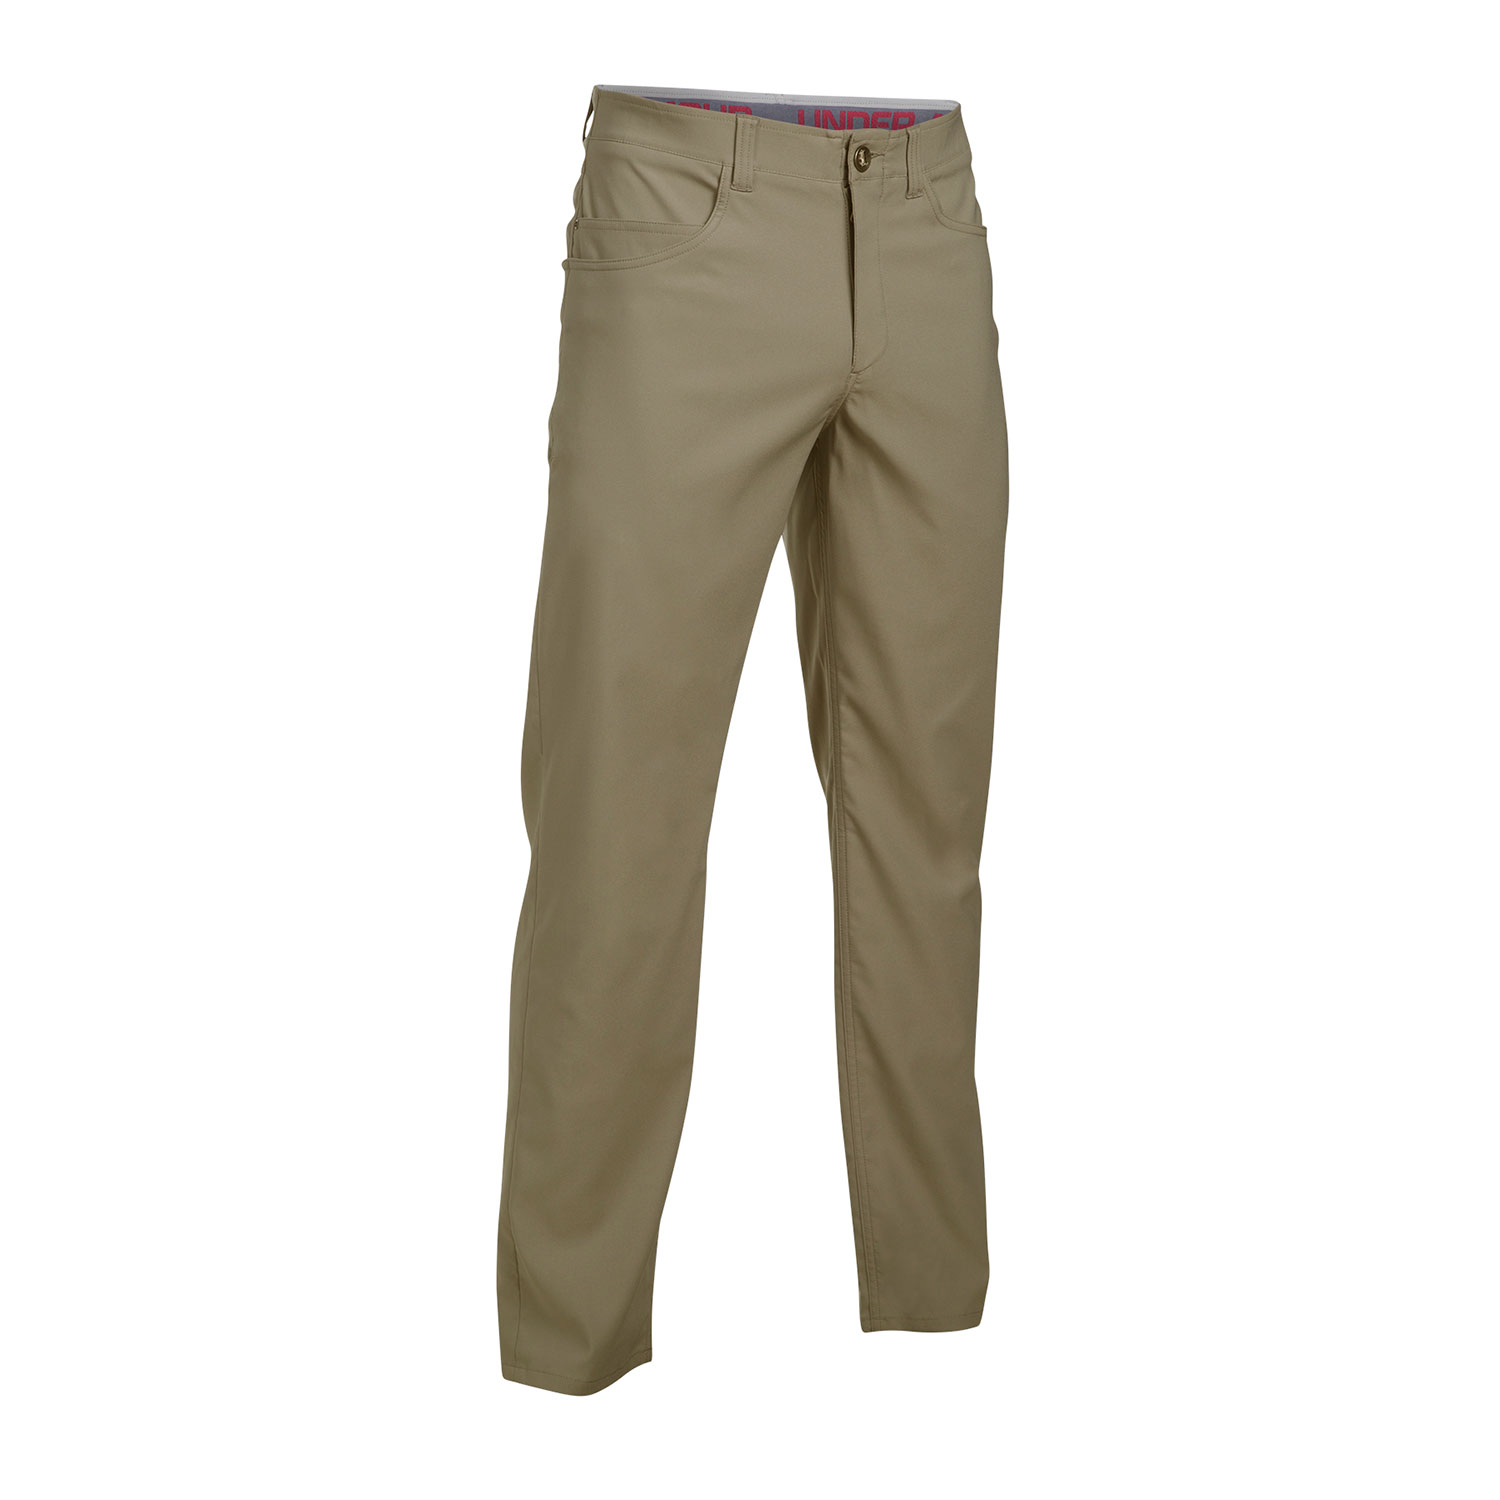 Under Armour Storm Covert STR Pants